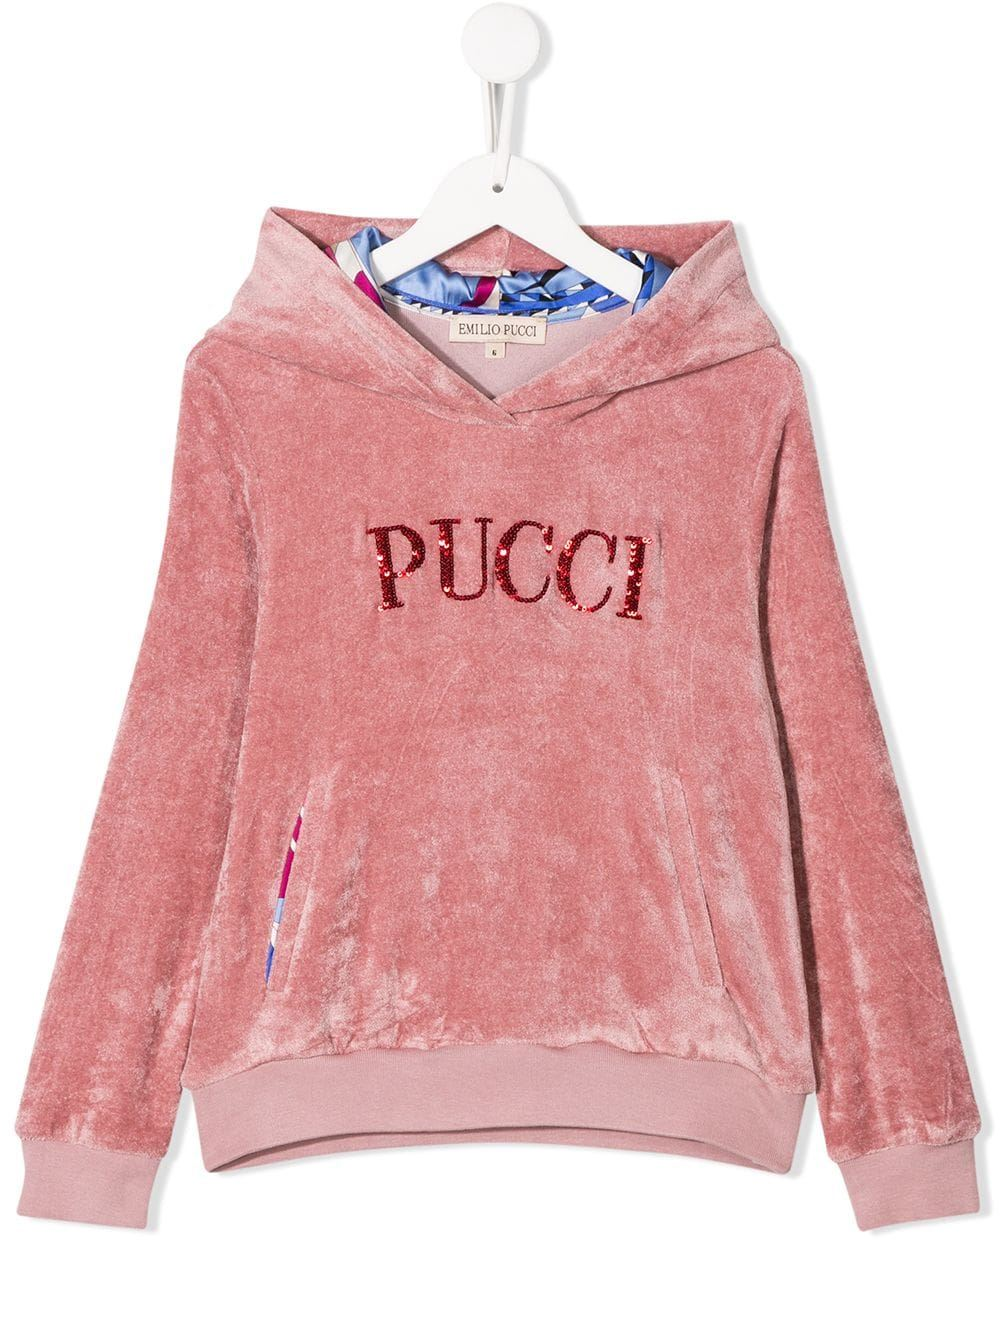 EMILIO PUCCI JUNIOR sequinned logo hoodie - Maison De Fashion